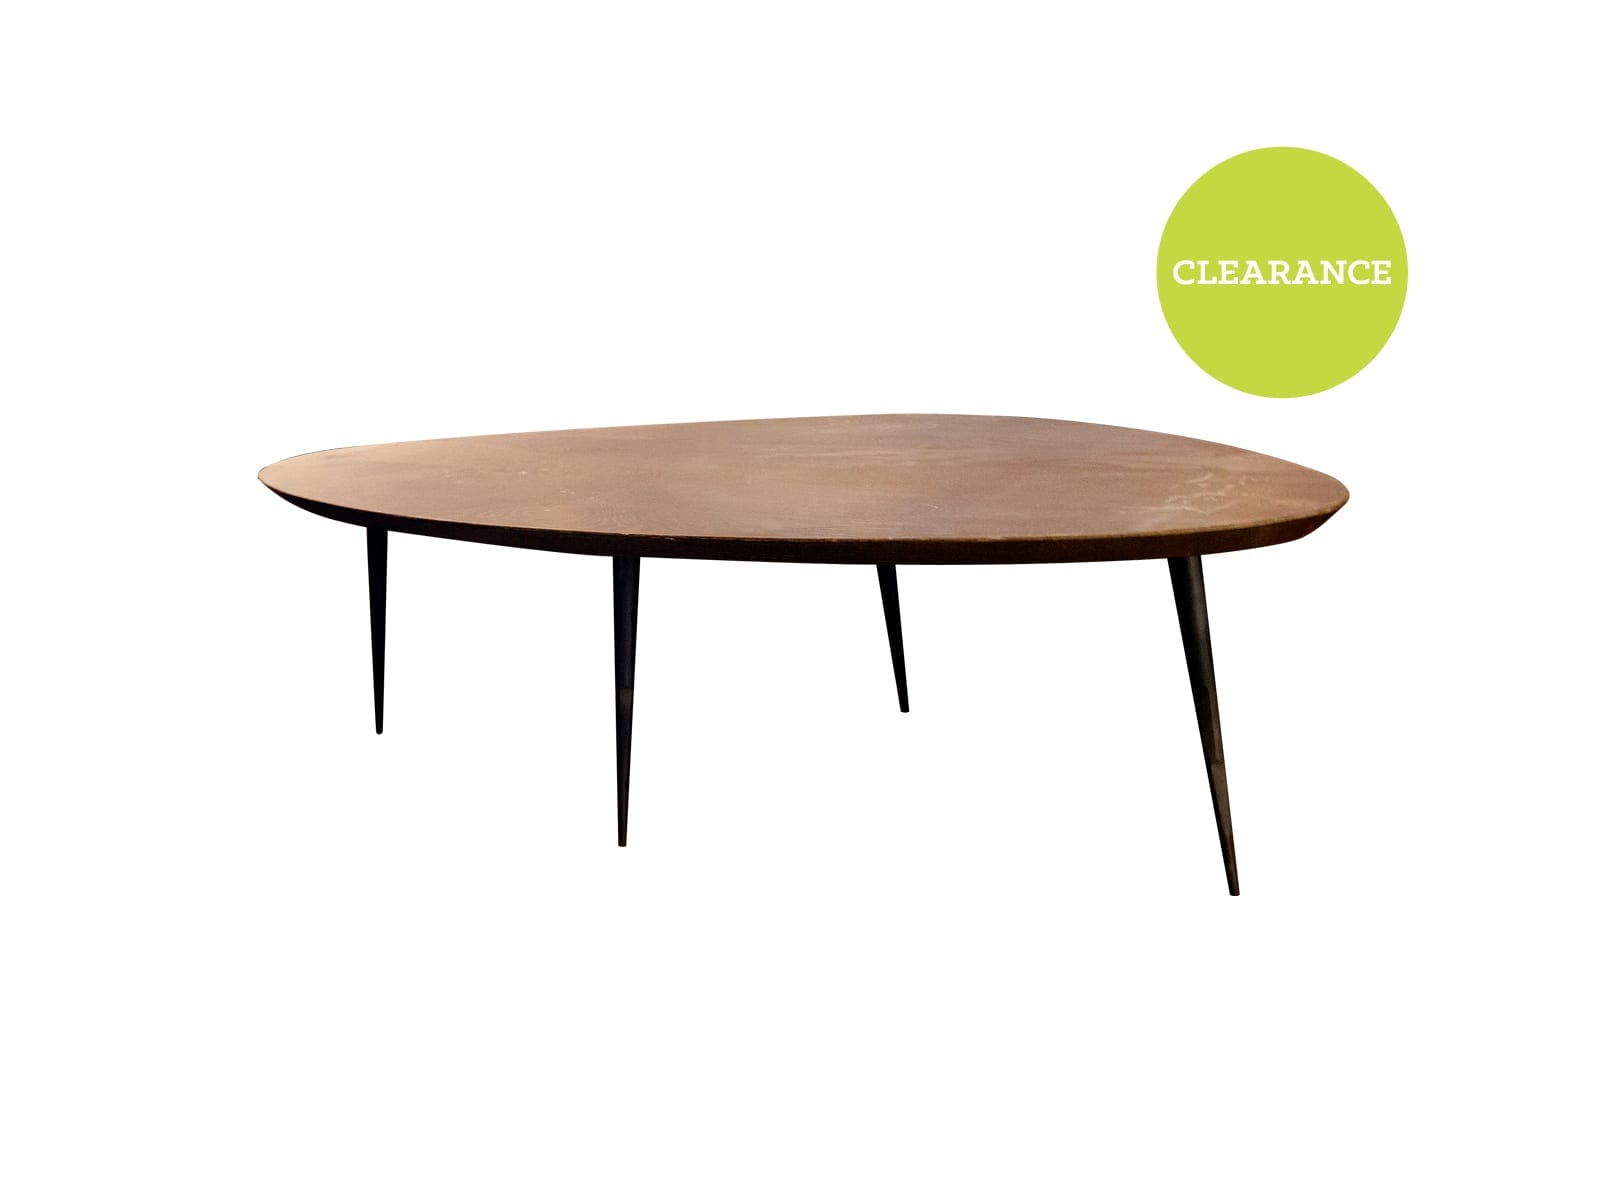 Ethnicraft Peebles Coffee Table in Standard